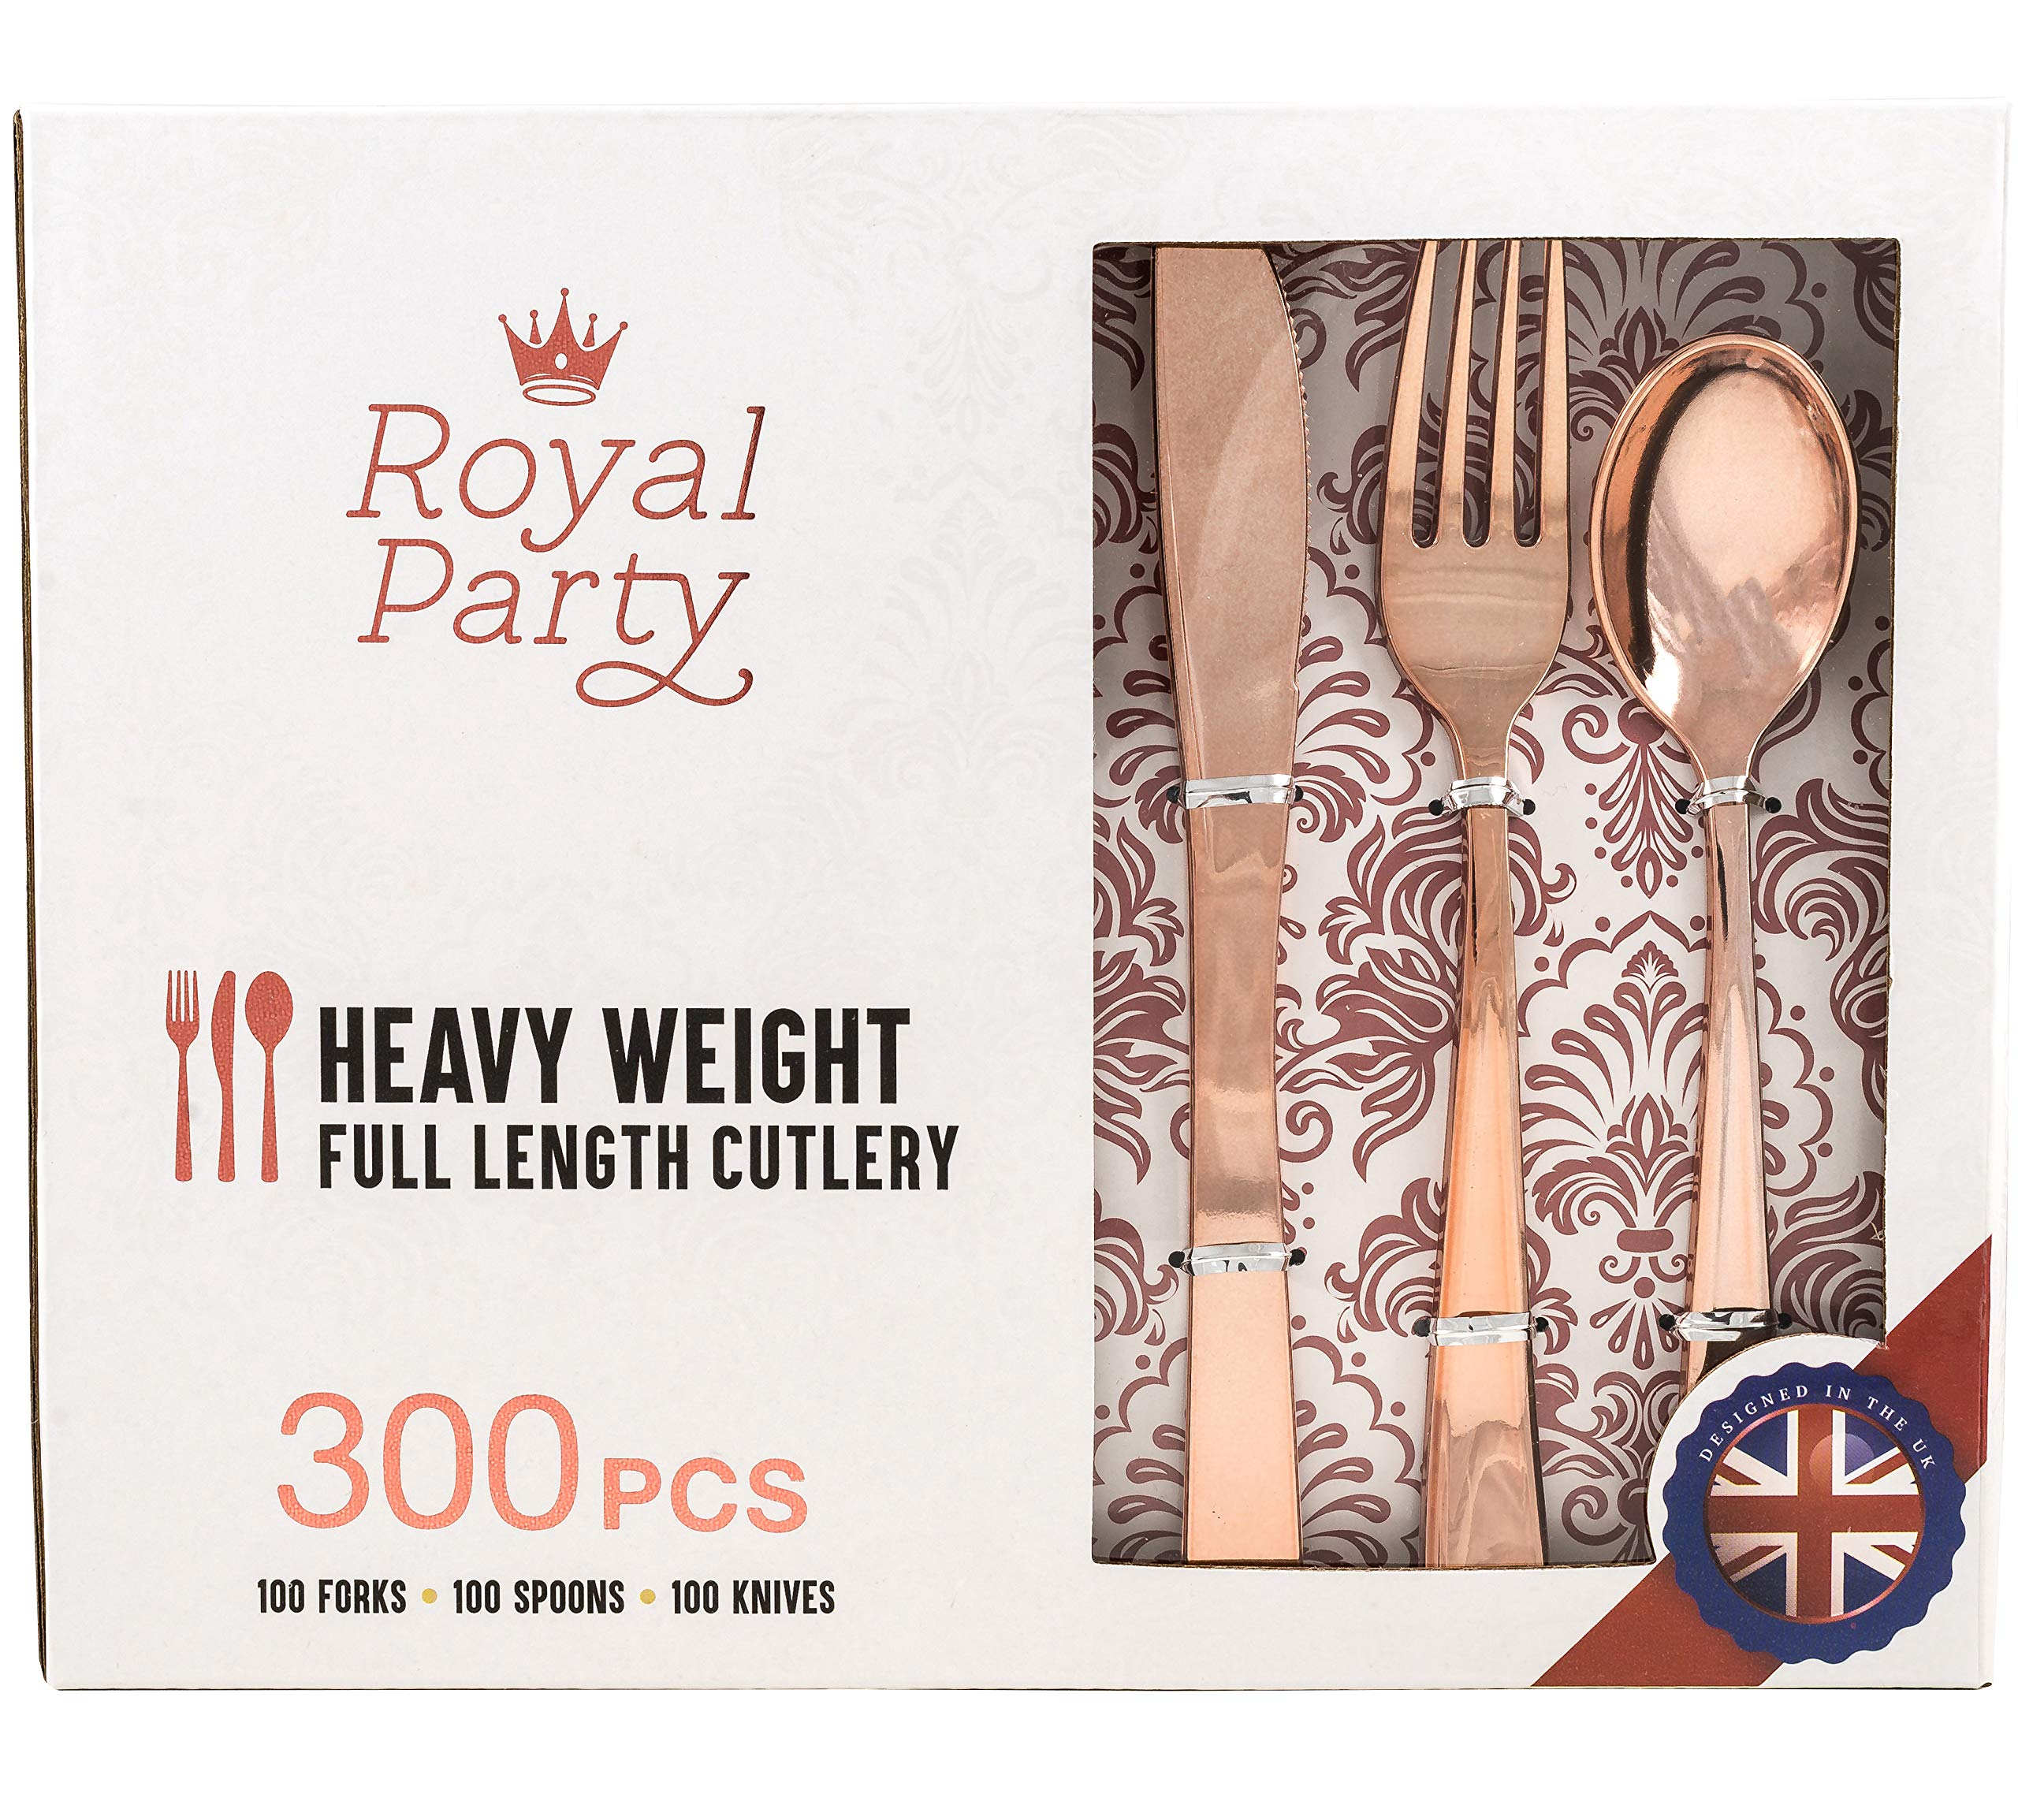 300 Pieces Premium Rose Gold Plastic Silverware from Royal Party | Disposable Heavyweight Plastic Cutlery | Full Length Flatware Set - Includes 100 Forks, 100 Spoons, 100 Knives. by Royal Party